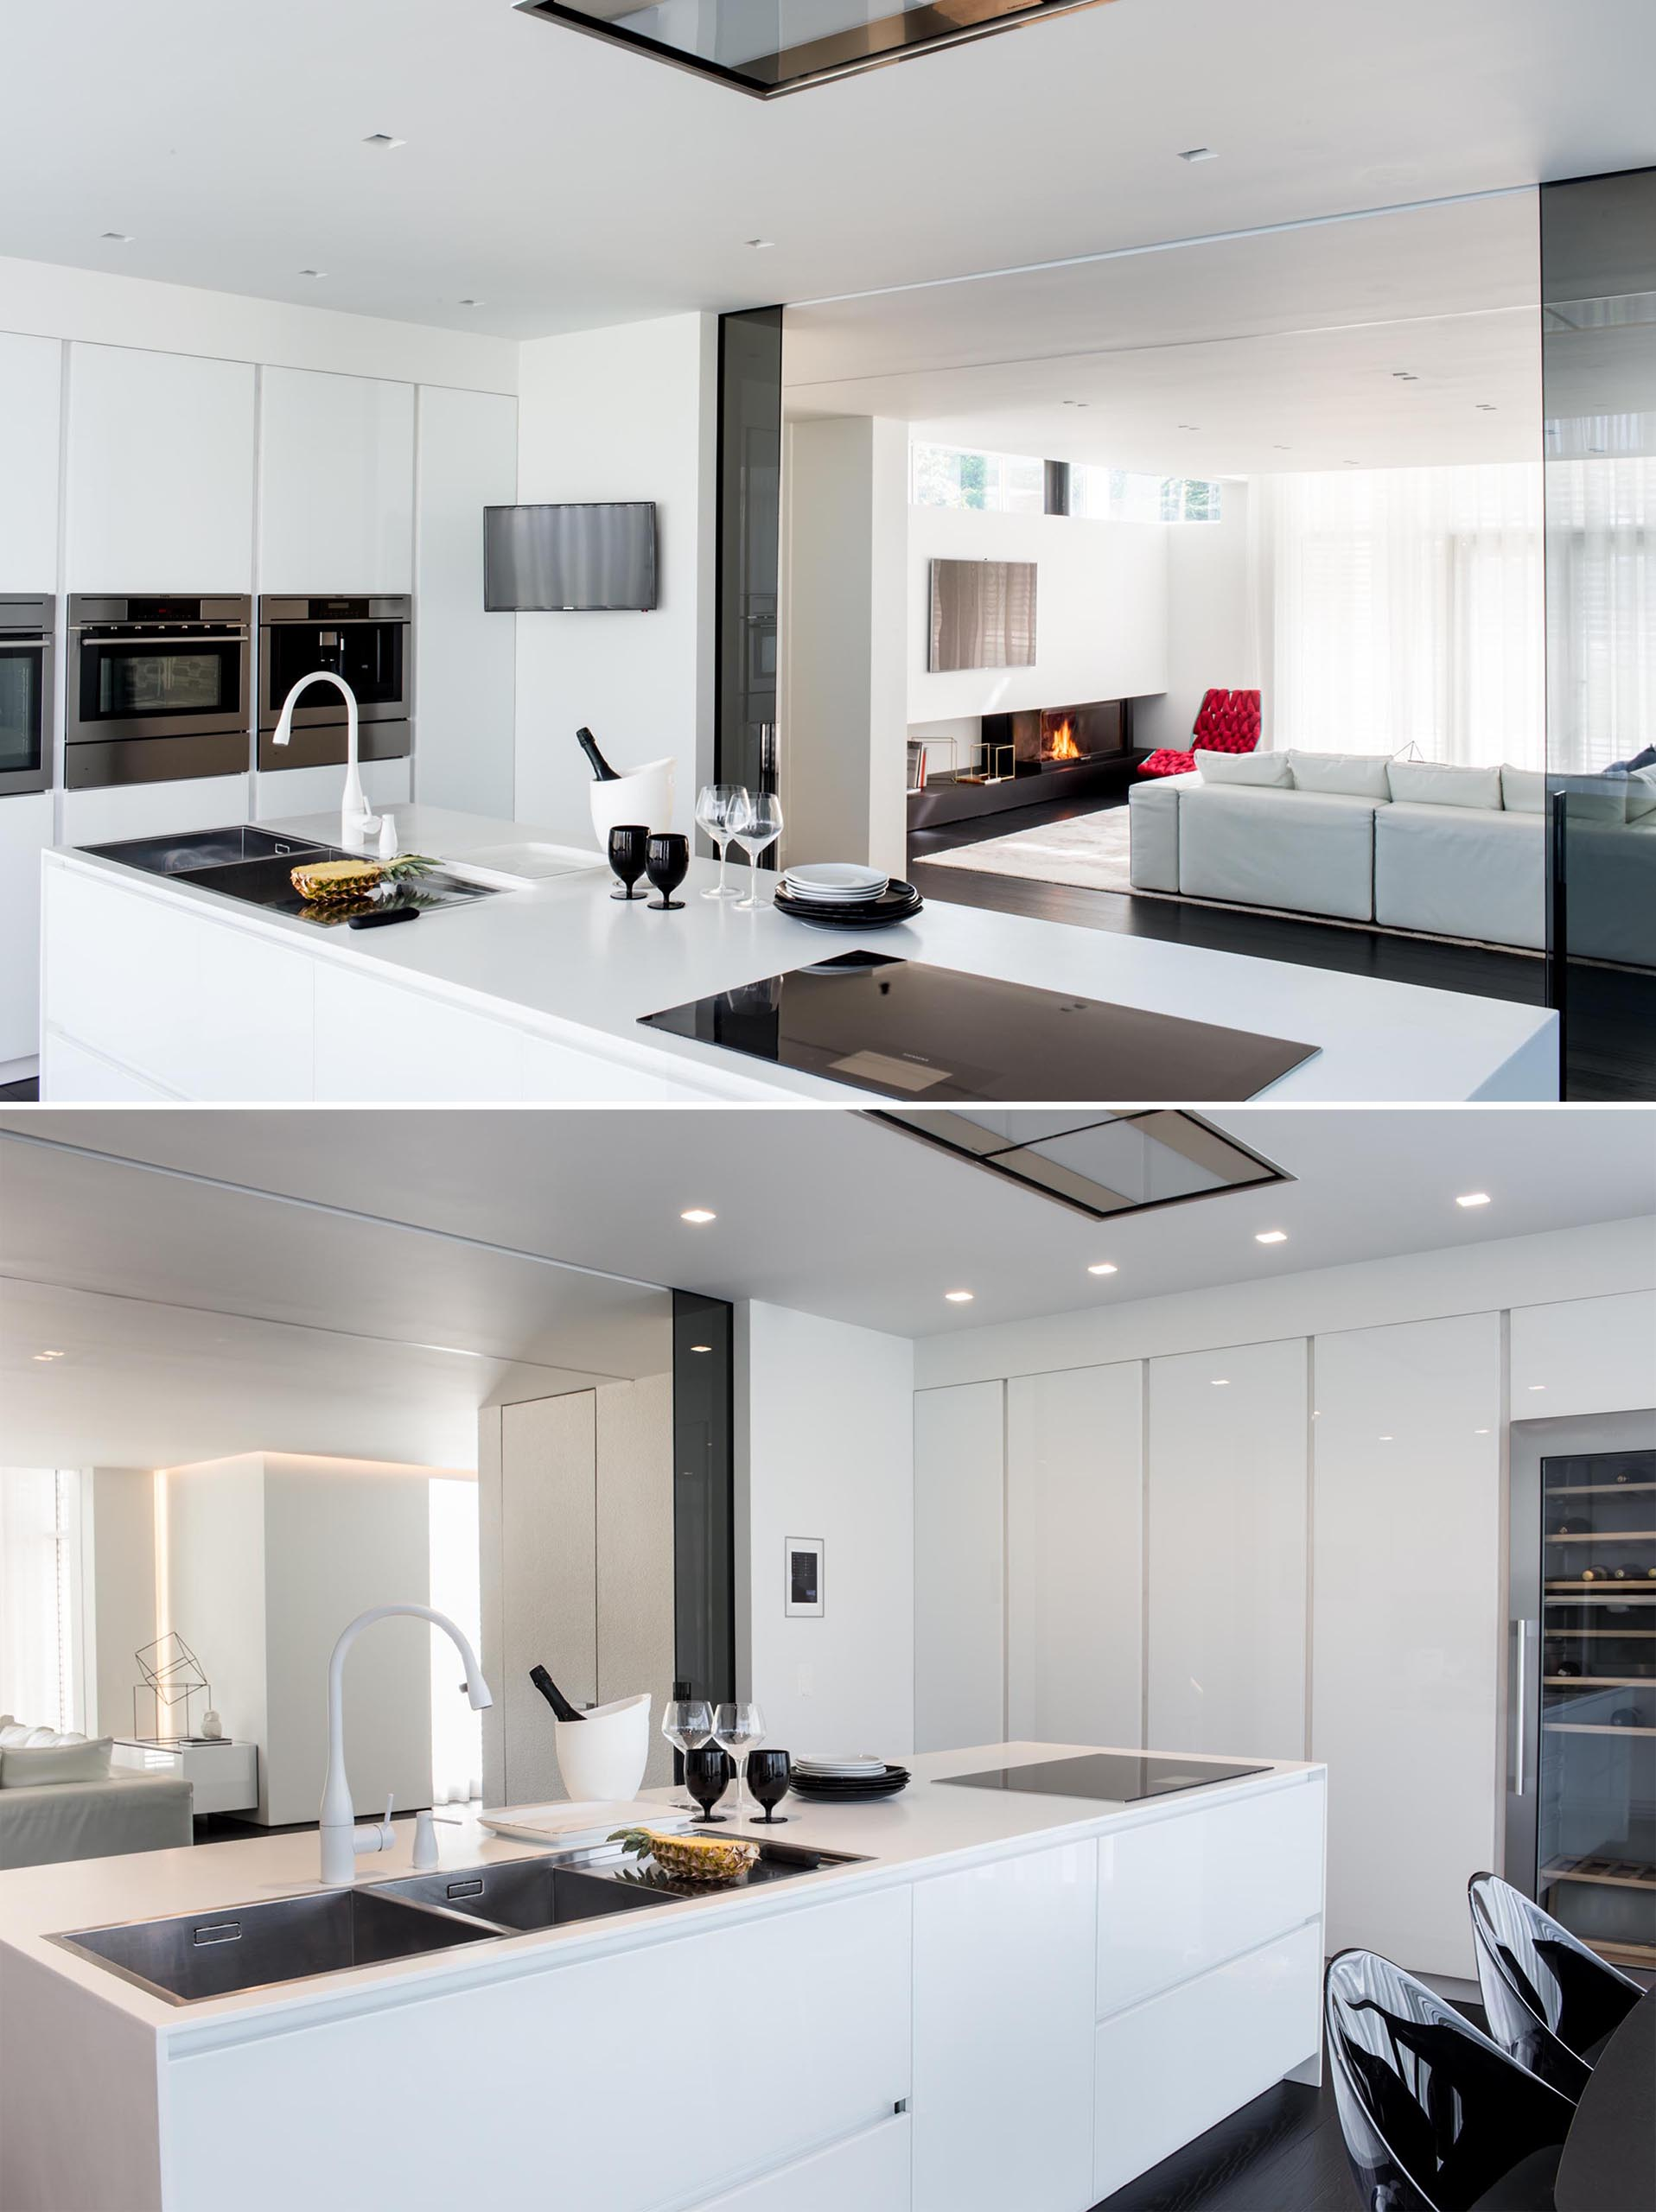 A modern kitchen with minimalist white cabinets, stainless steel appliances, and an island.